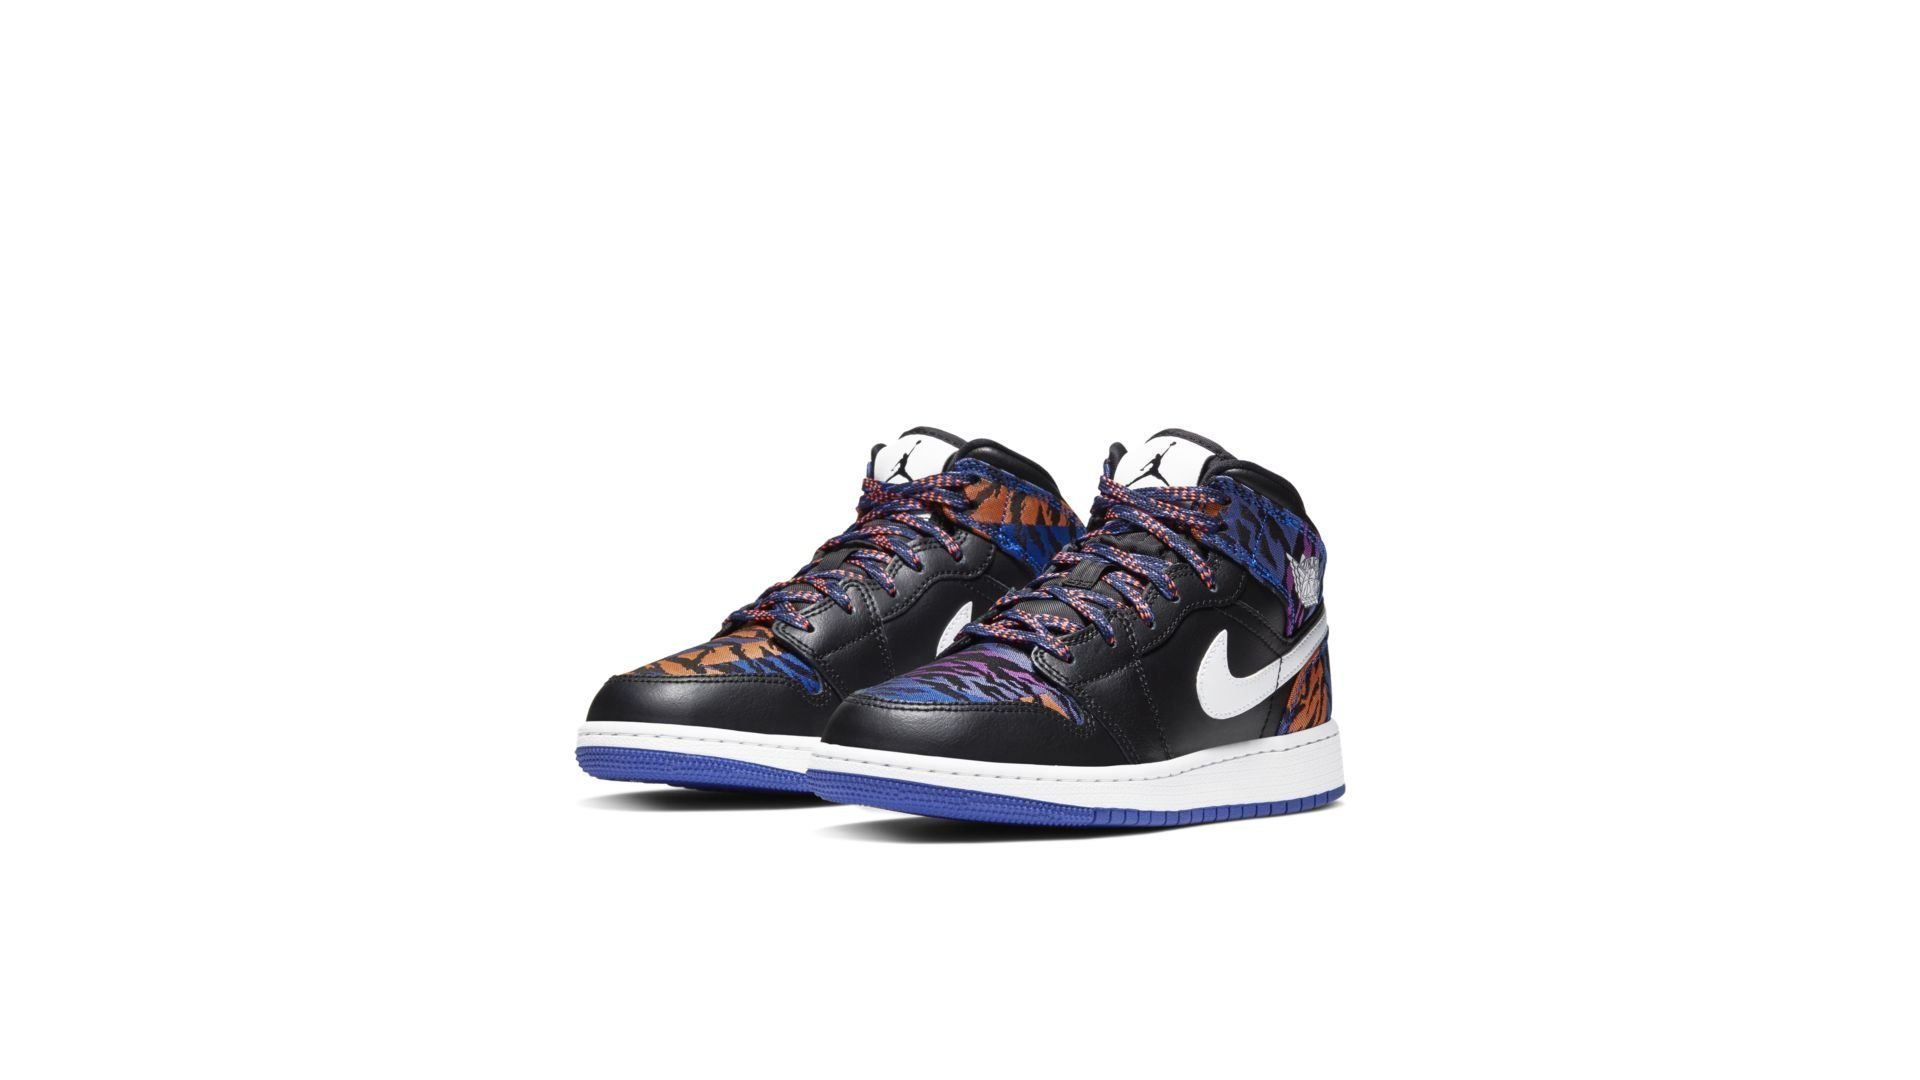 Jordan 1 Mid Multi-Color Tiger Stripe (GS) (AV5174-005)